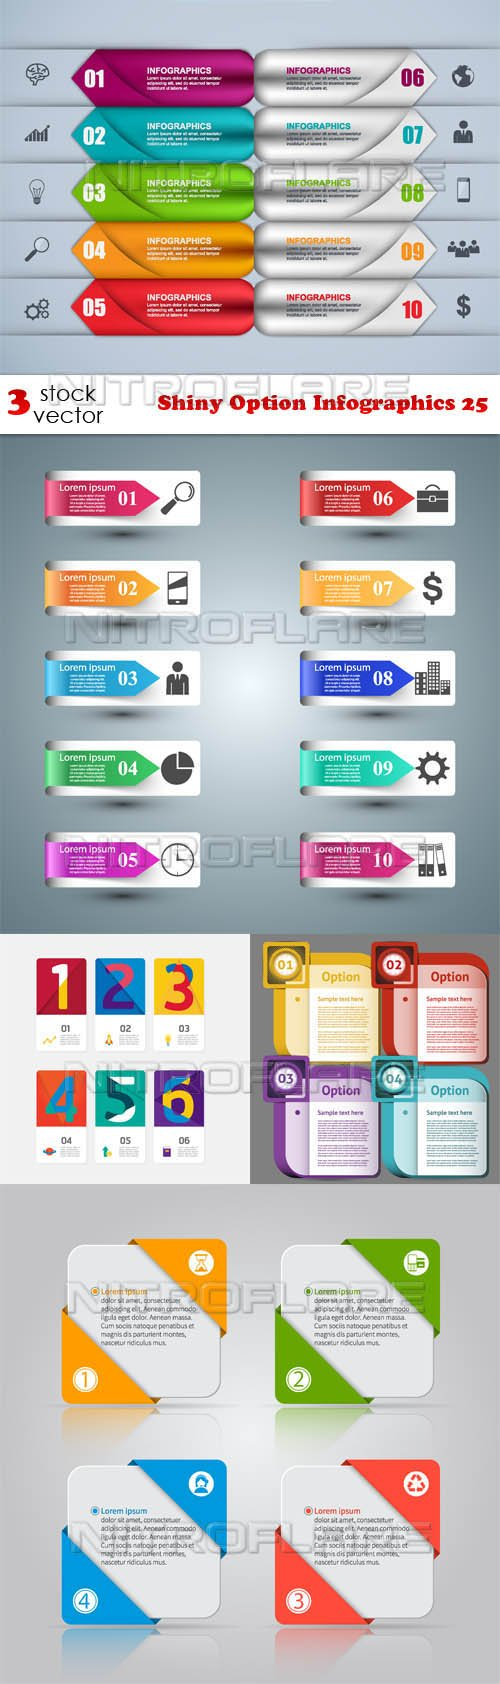 Vectors - Shiny Option Infographics 25